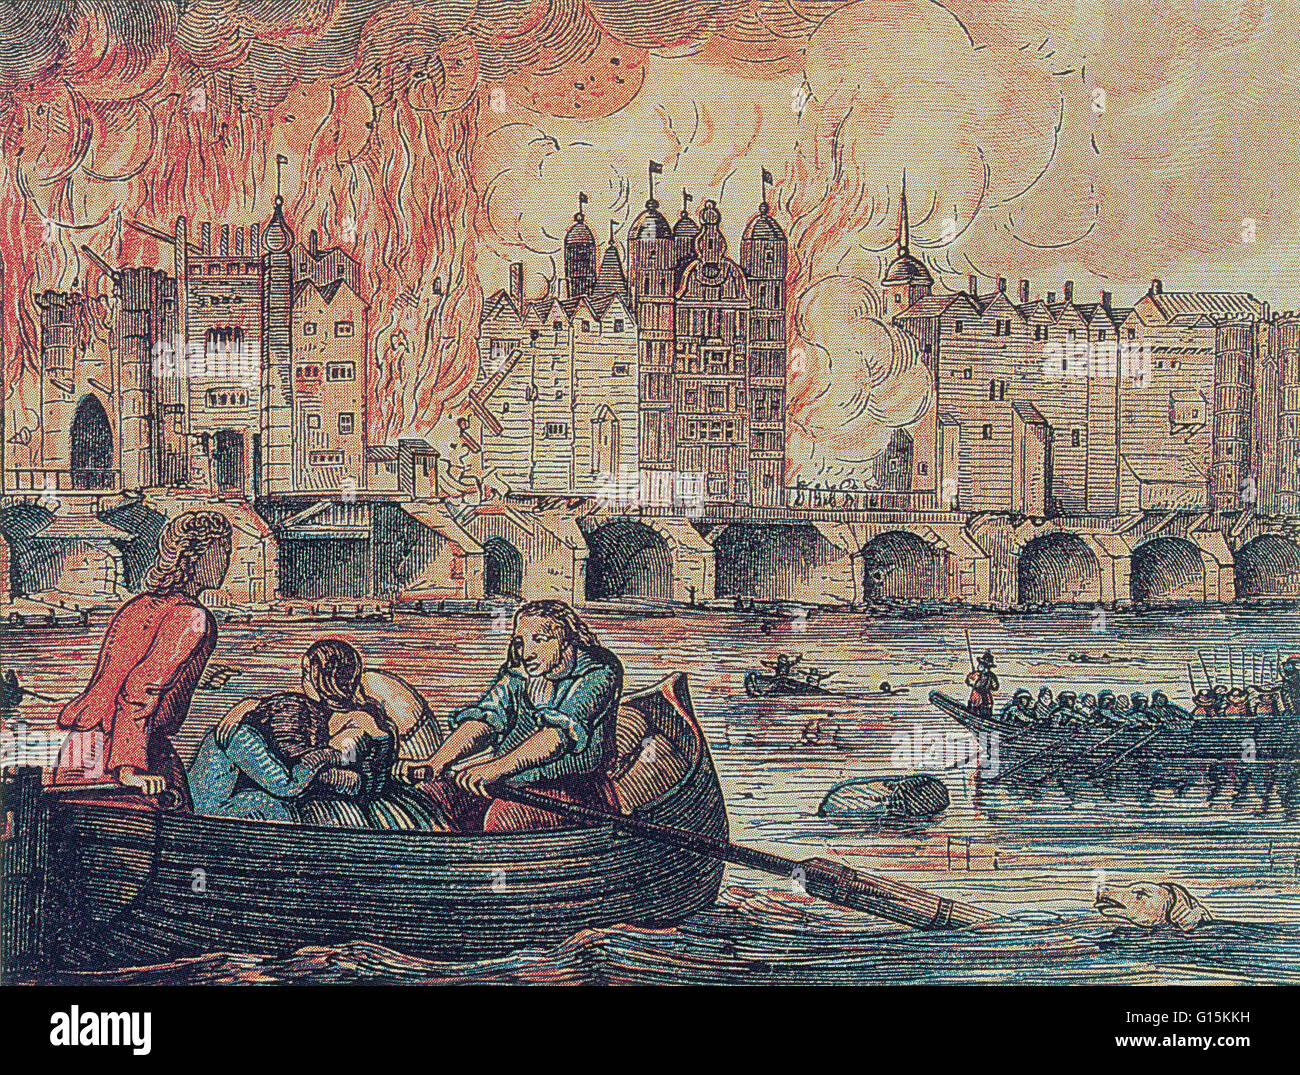 In the early hours of September 2, 1666 a fire began at a bakehouse in